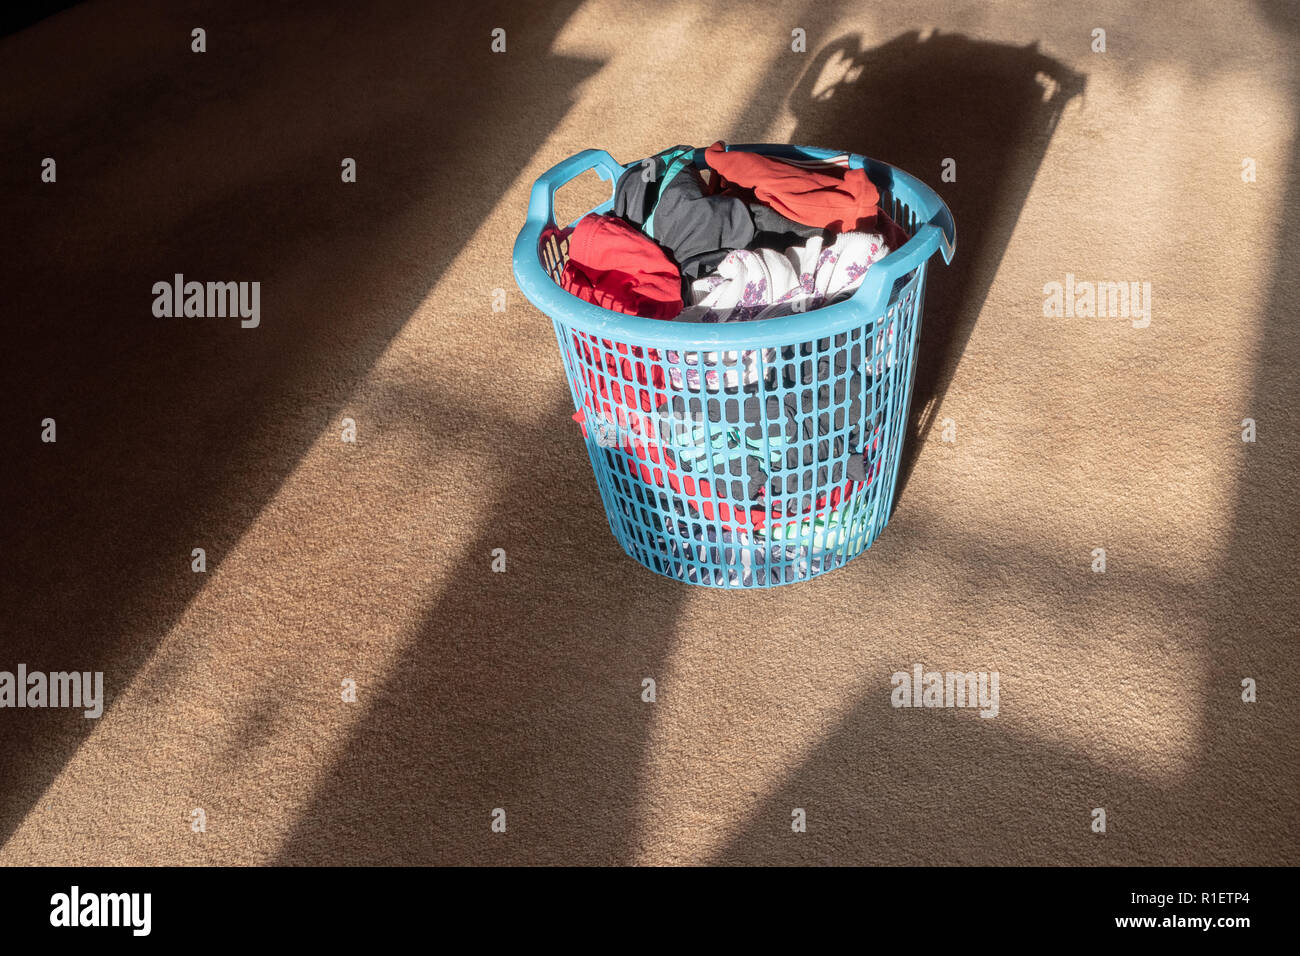 Freshly laundered clothing items inside a blue plastic clothes basket standing in the sunlight on a brown carpet - Stock Image